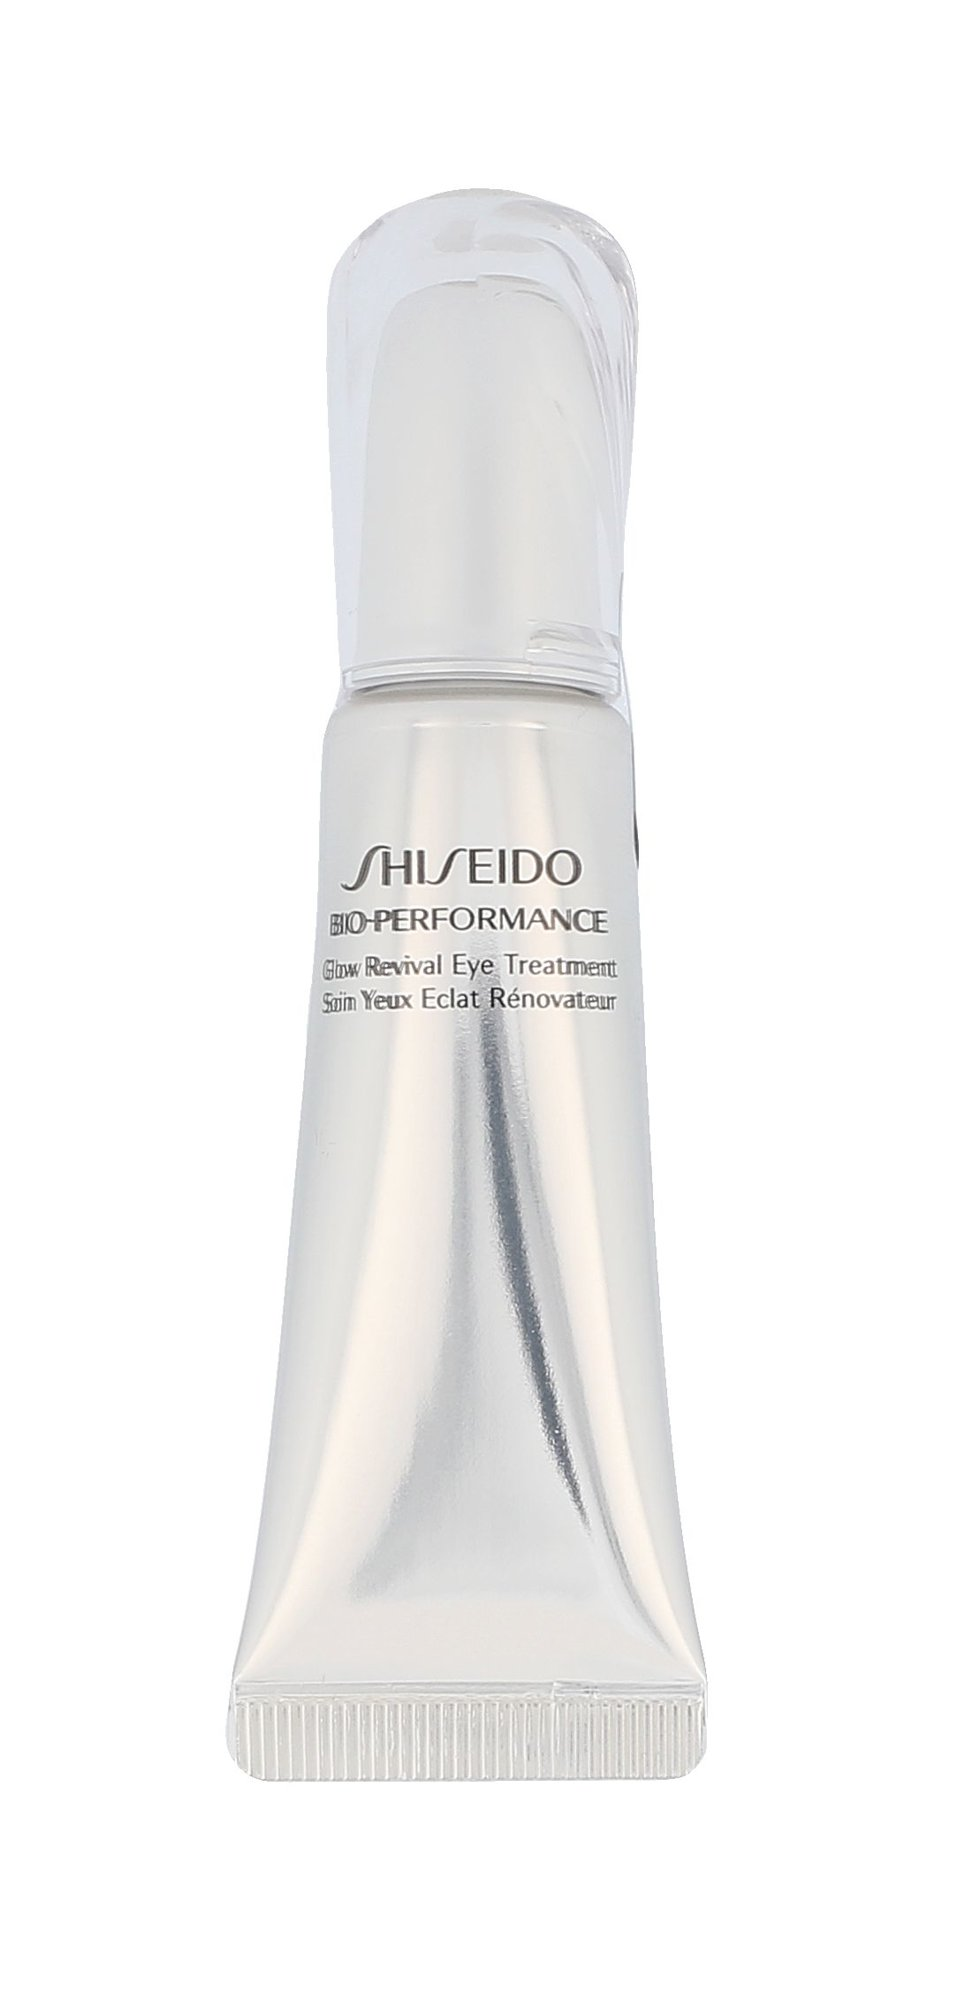 Shiseido Bio-Performance Cosmetic 15ml